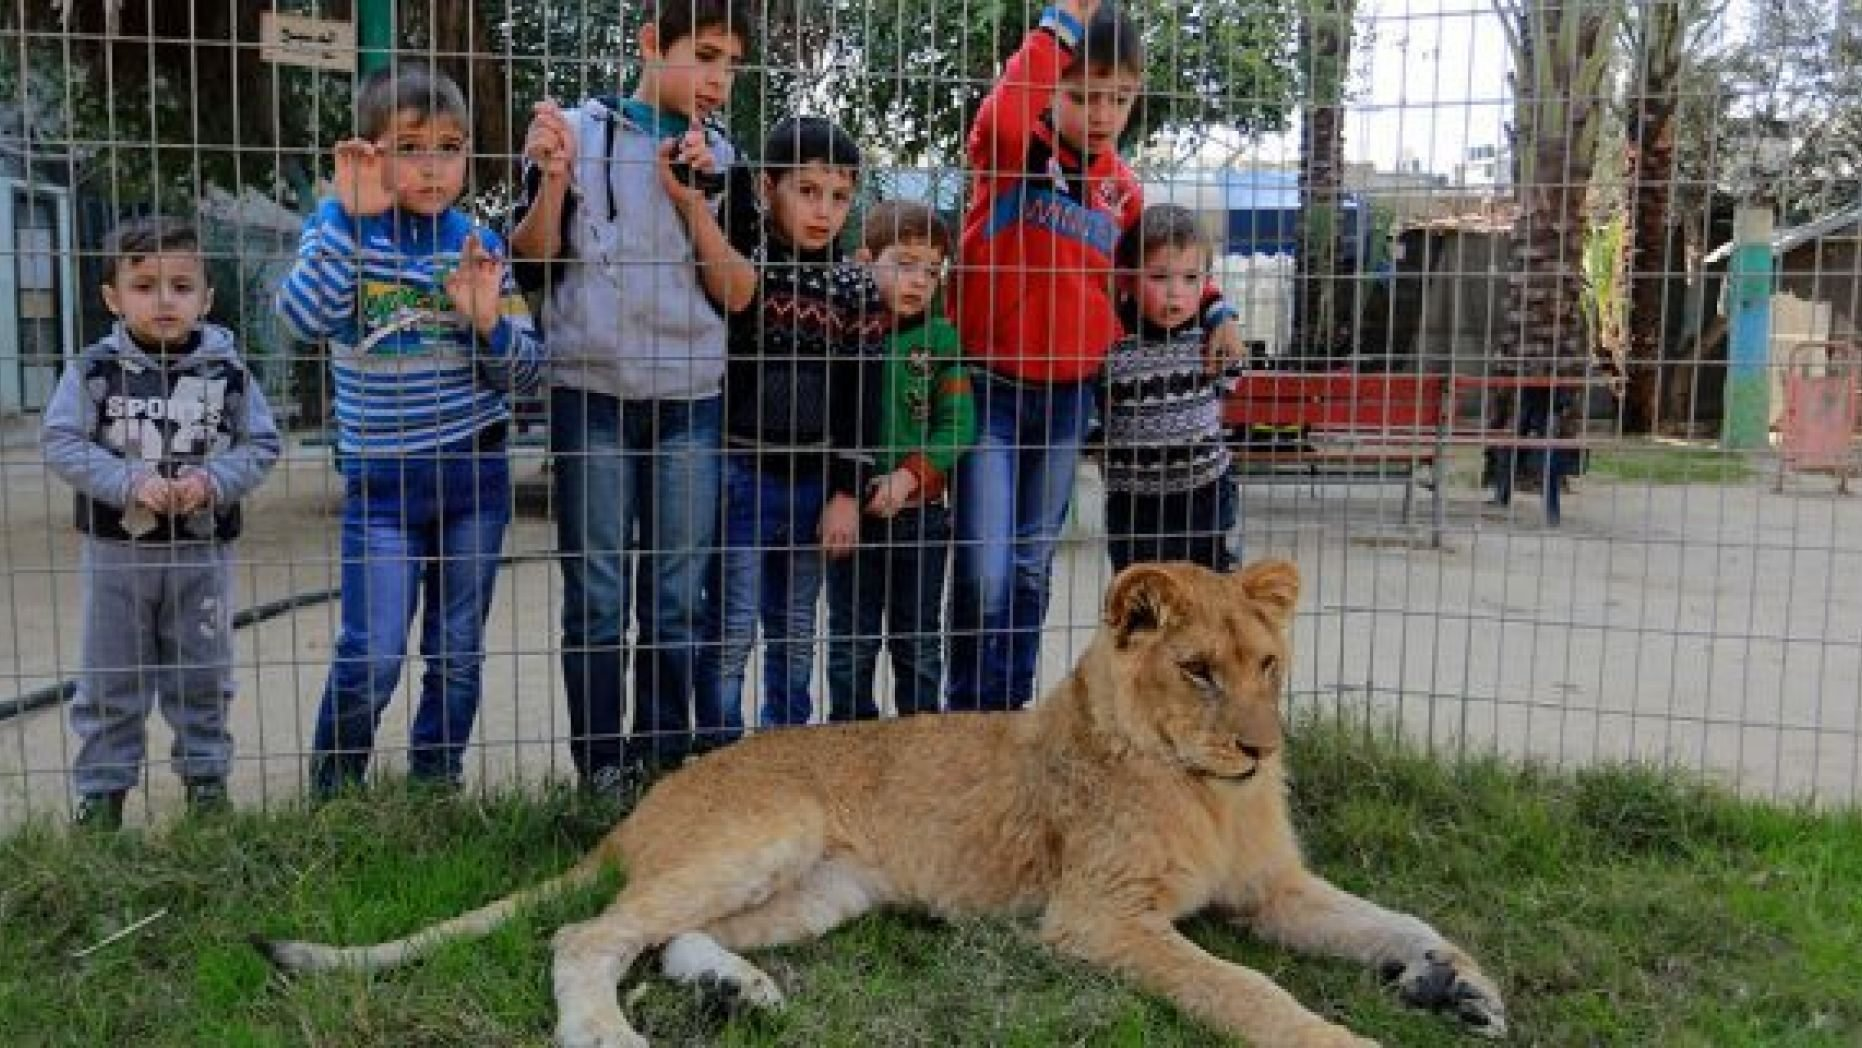 Palestinian children look through the fence of a lion cage at the Rafah Zoo in Gaza City, Gaza on February 13, 2019. Gaza